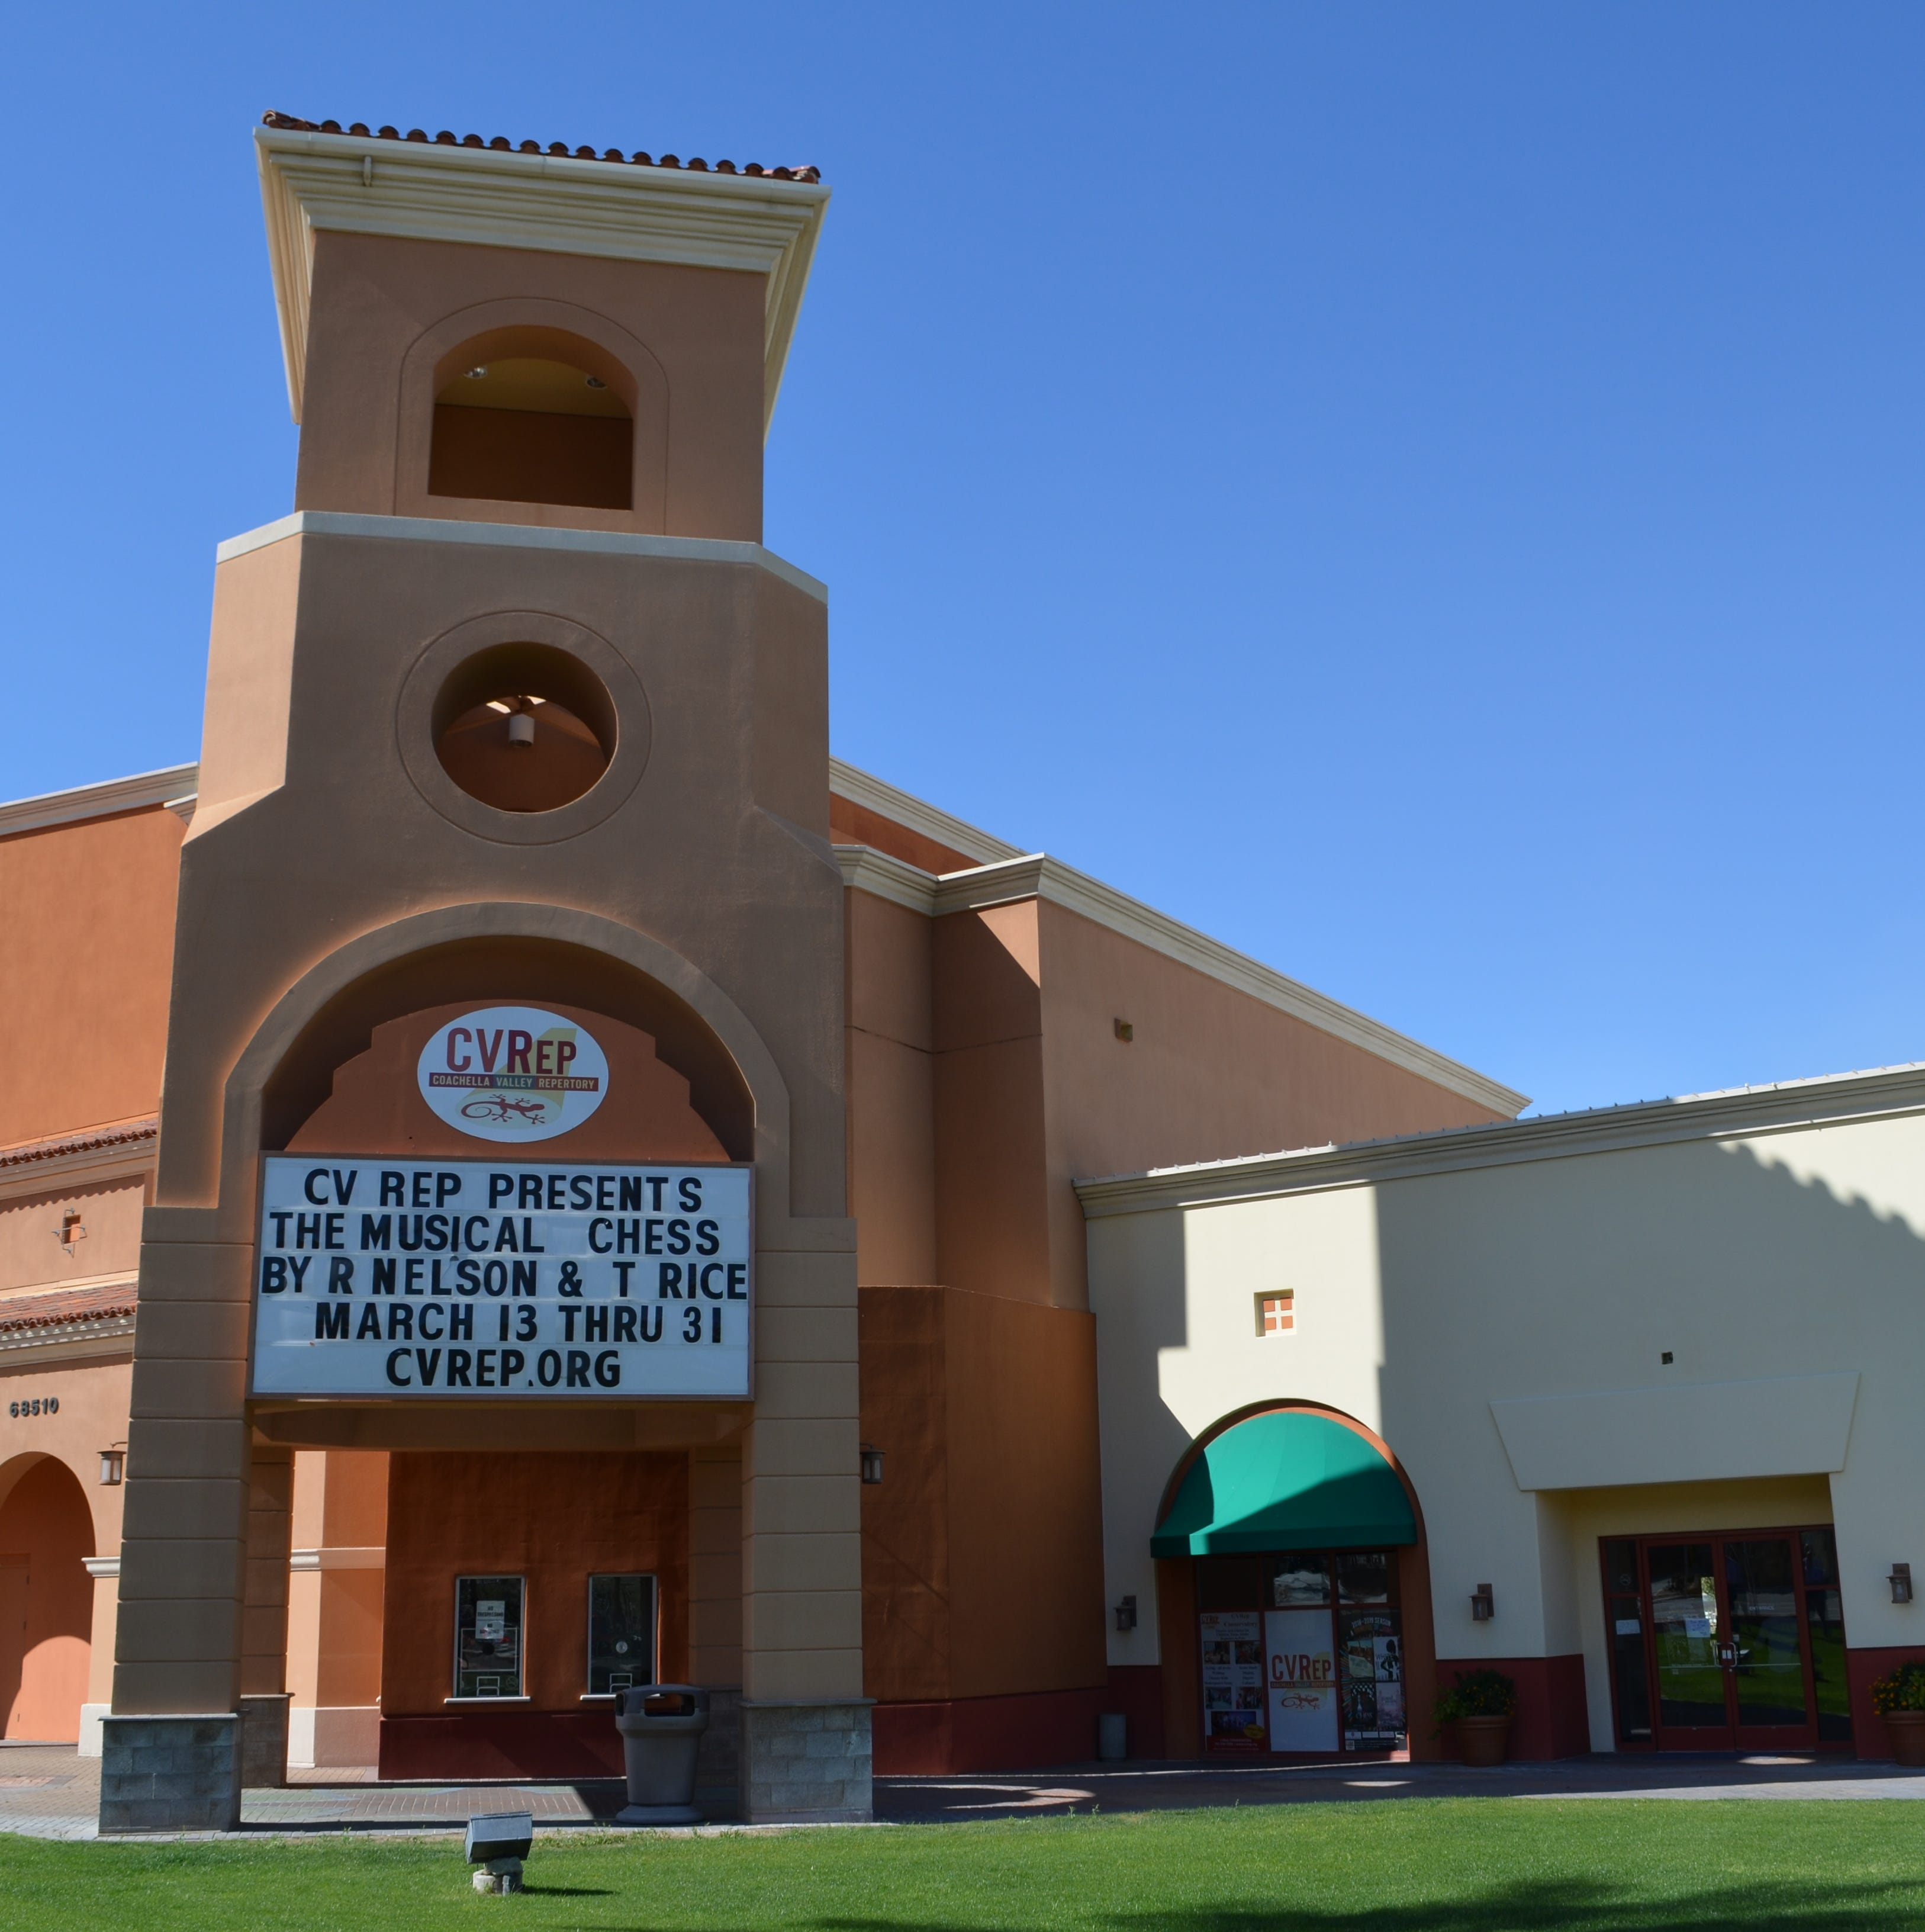 Coachella Valley Repertory makes desert history with opening of Cathedral City theater